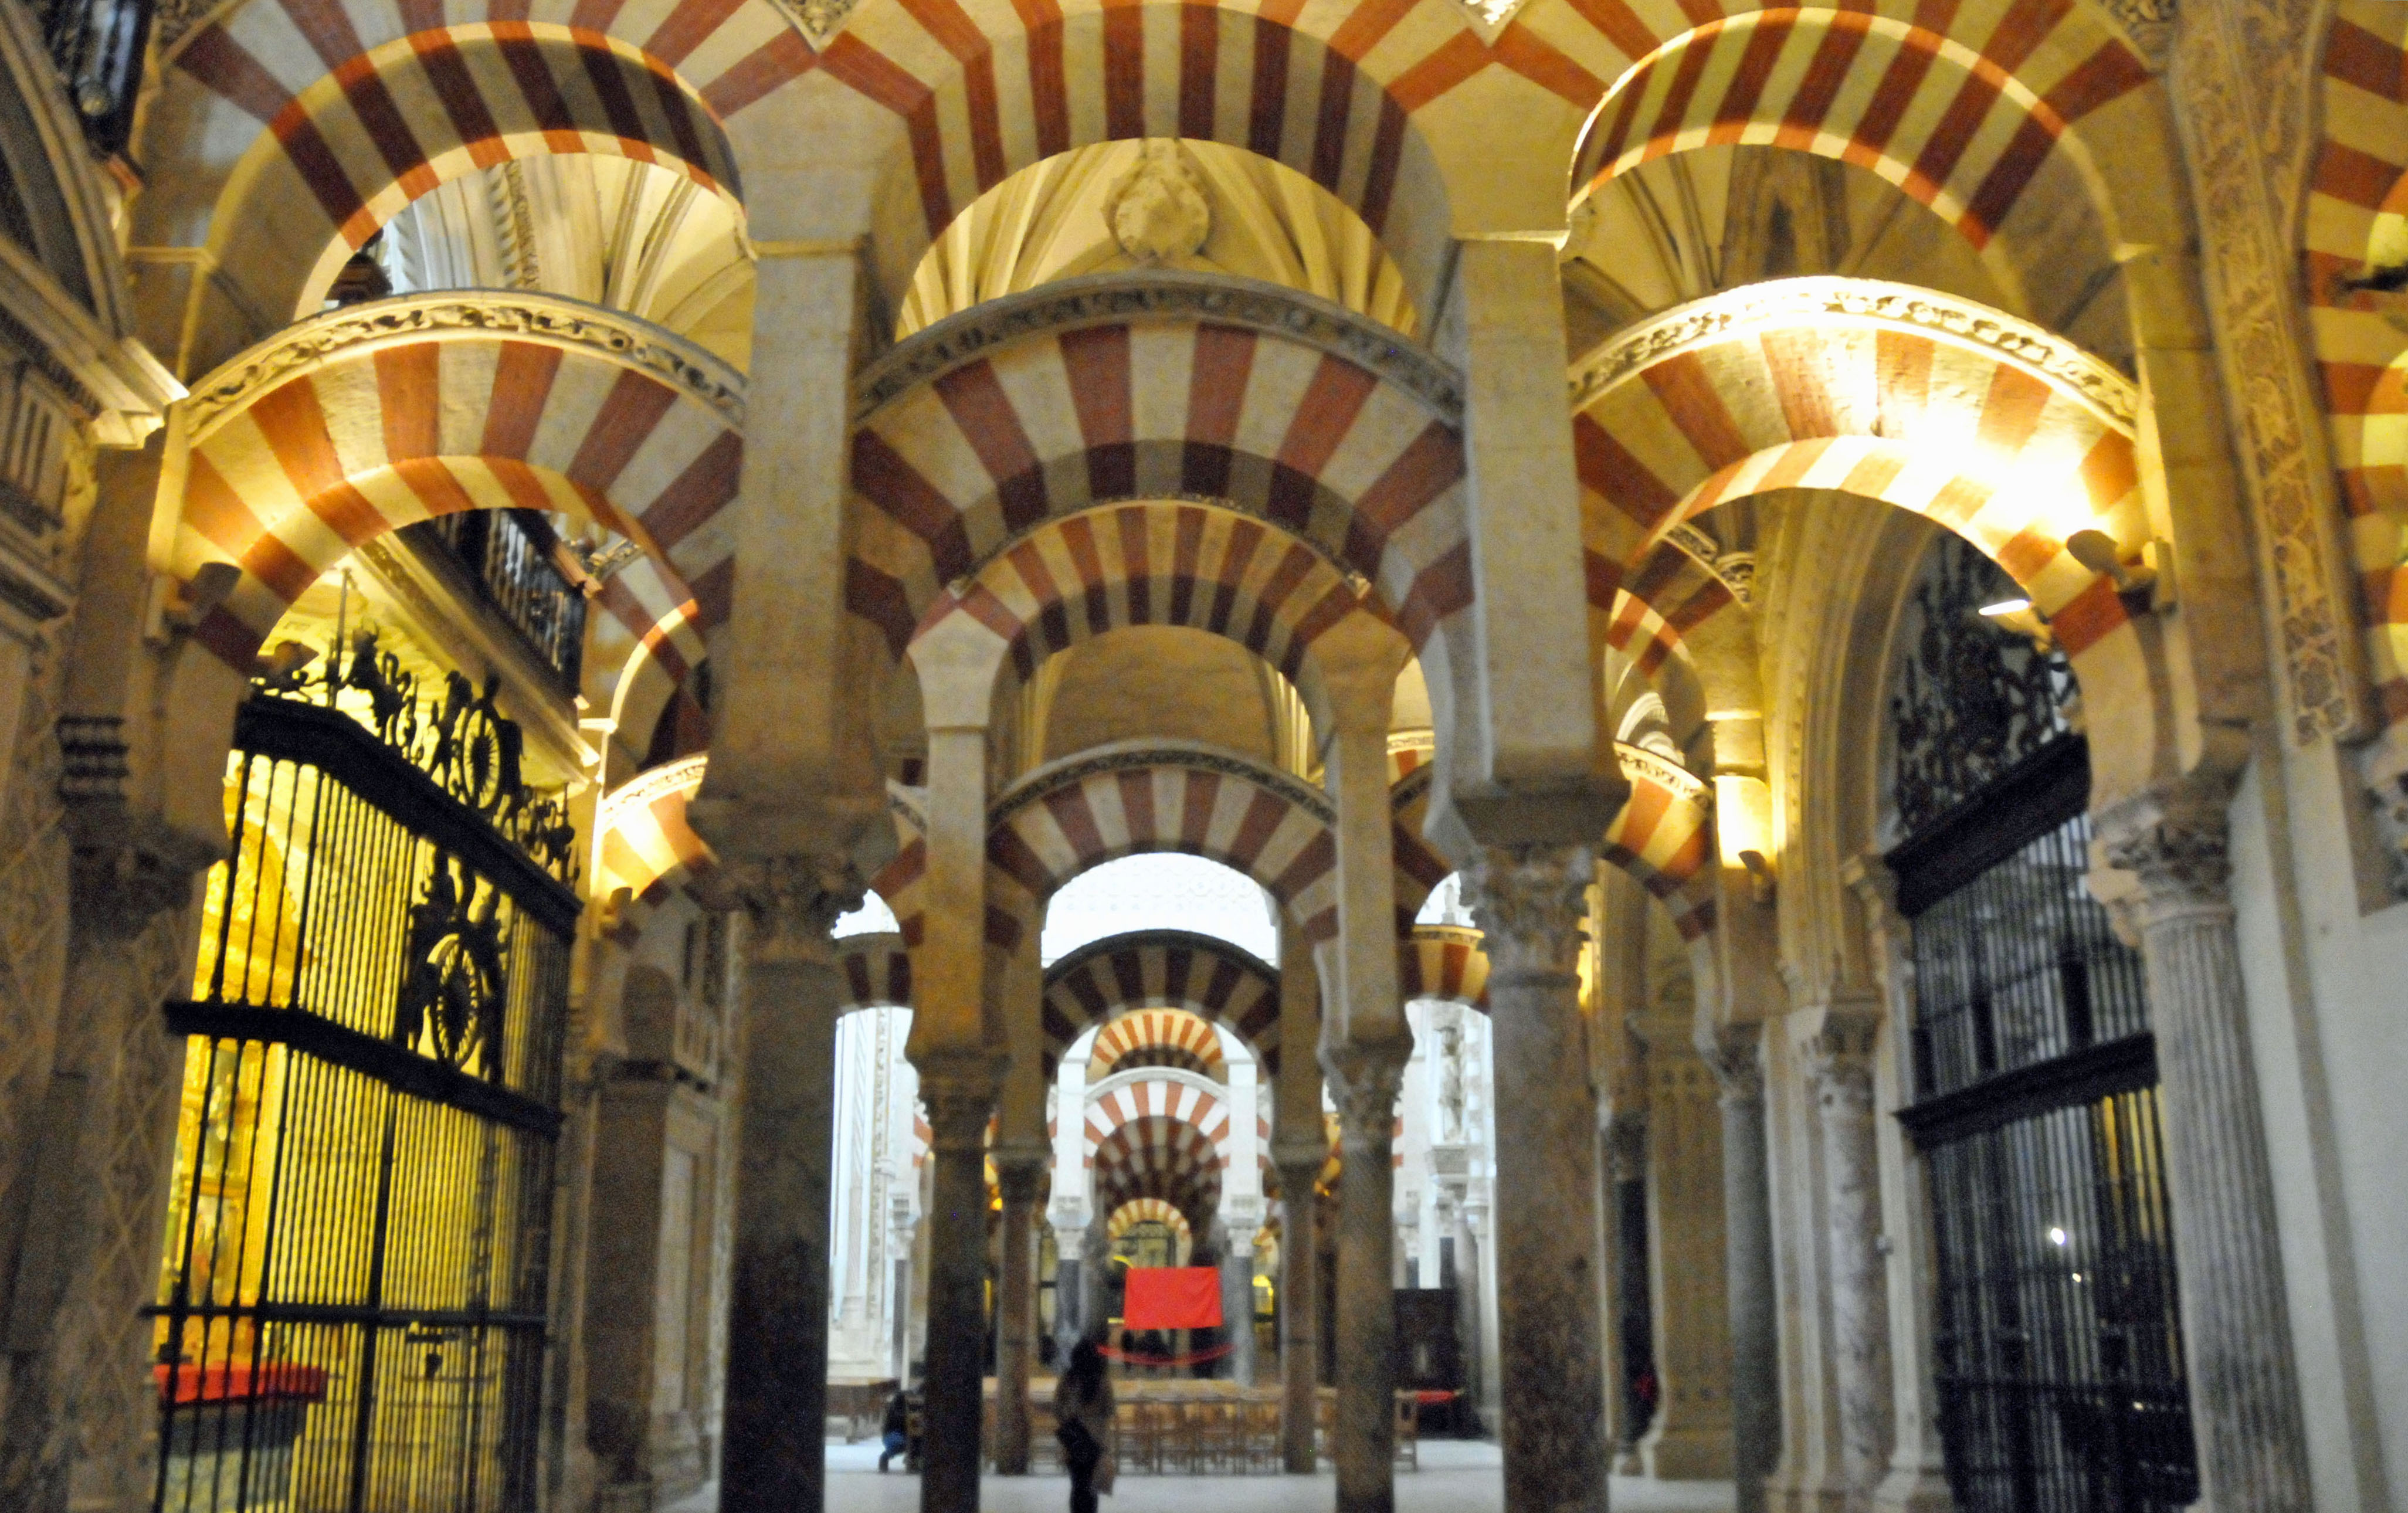 Inside the Mezquita of Cordoba (Photo by Don Knebel)